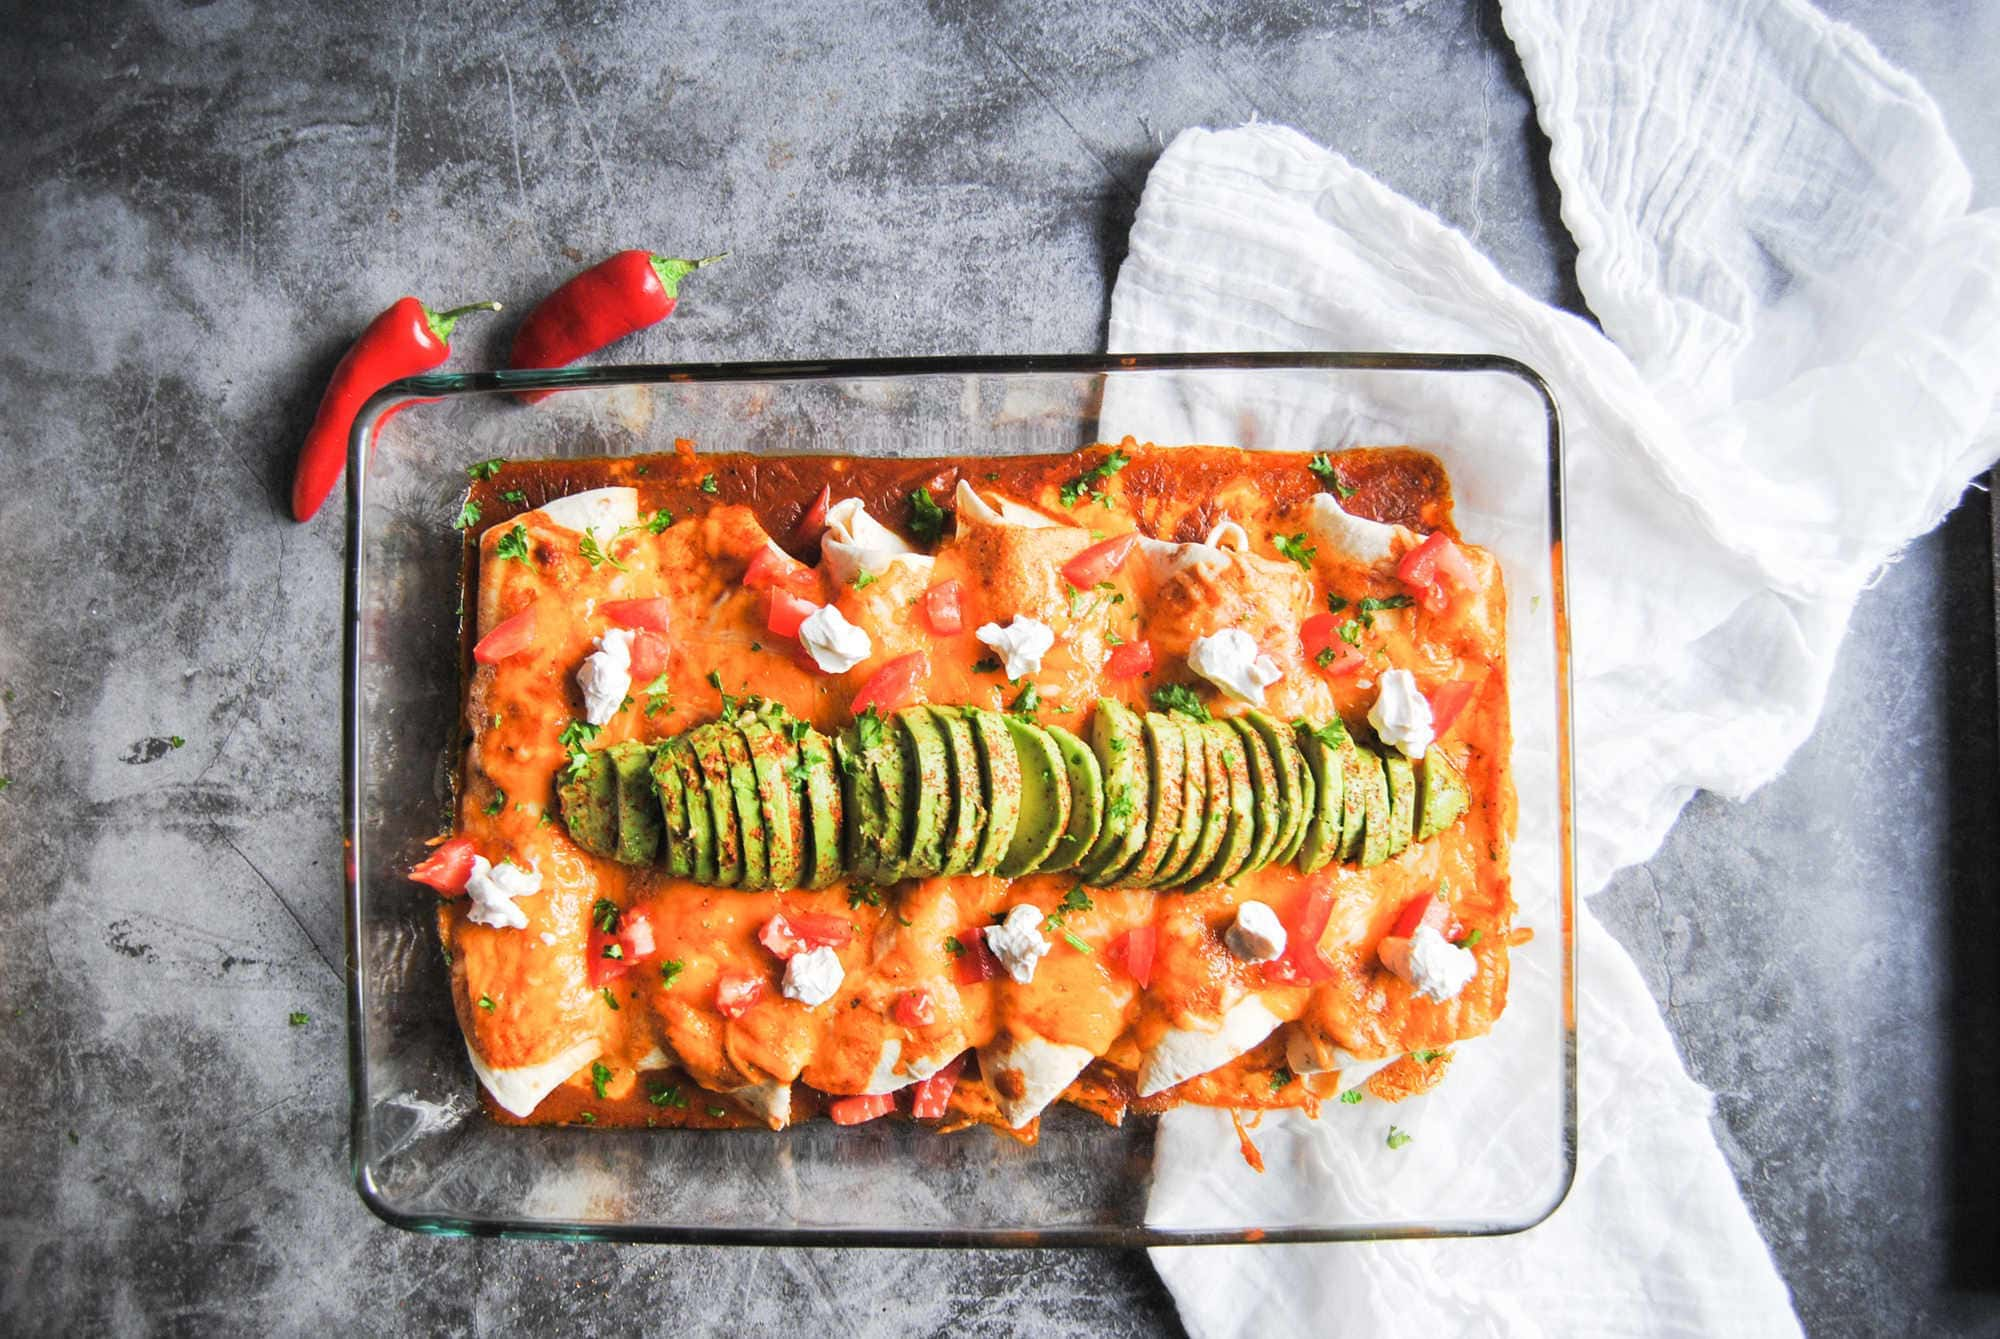 Versatile Enchiladas With Homemade Sauce - New Featured Image